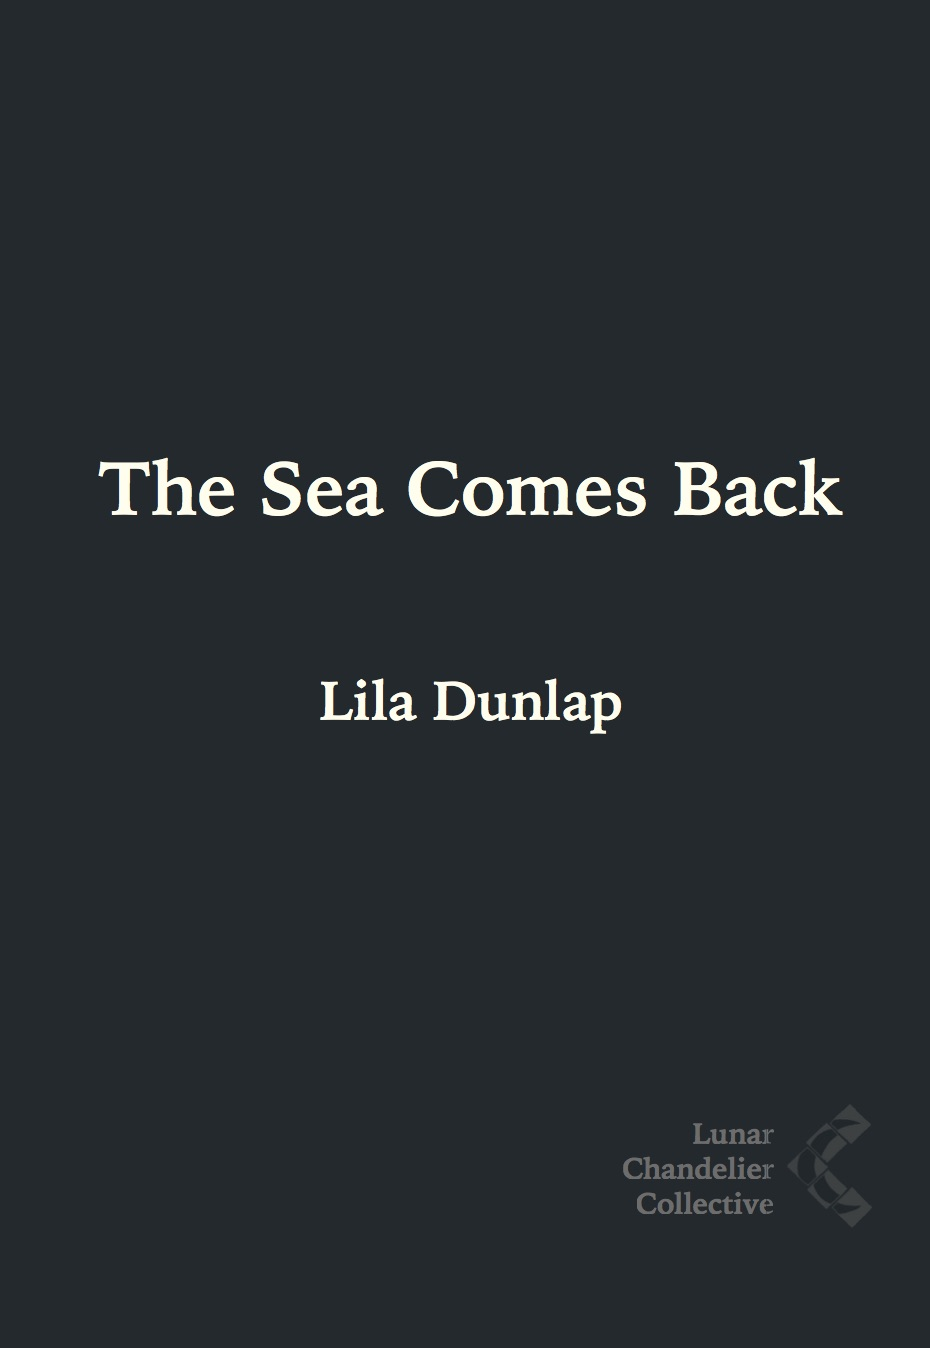 The Sea Comes Back